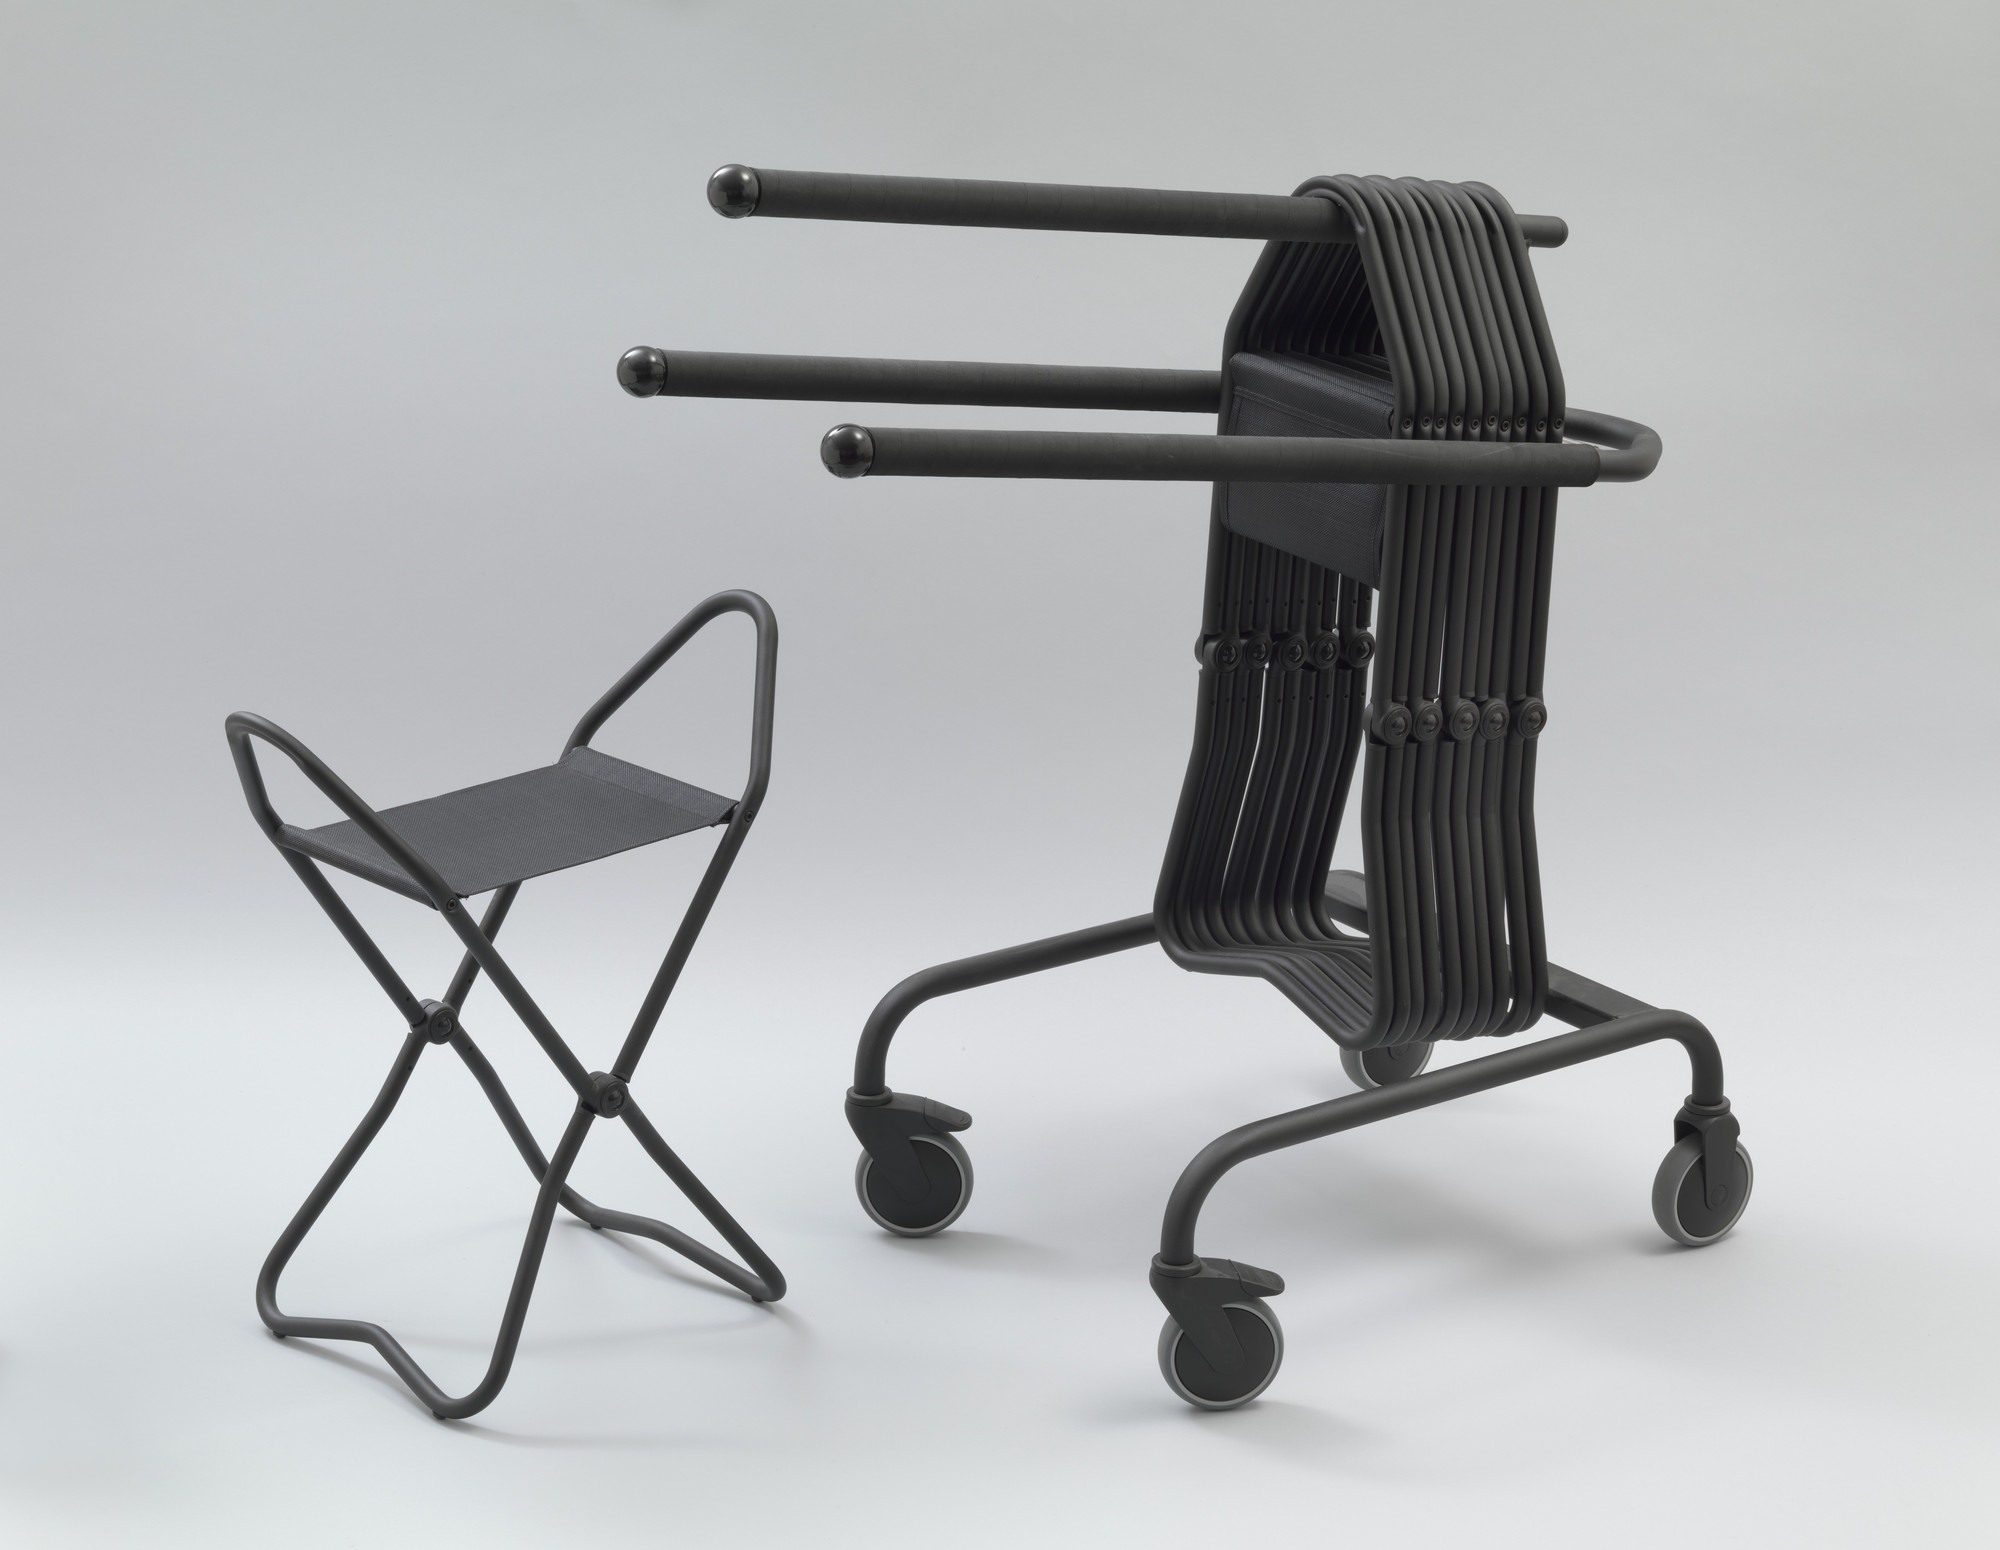 A&E Design, Hans Ehrich, Tom Ahlström. Stockholm II Folding Stool and Stockholm II Trolley. 1993-1994